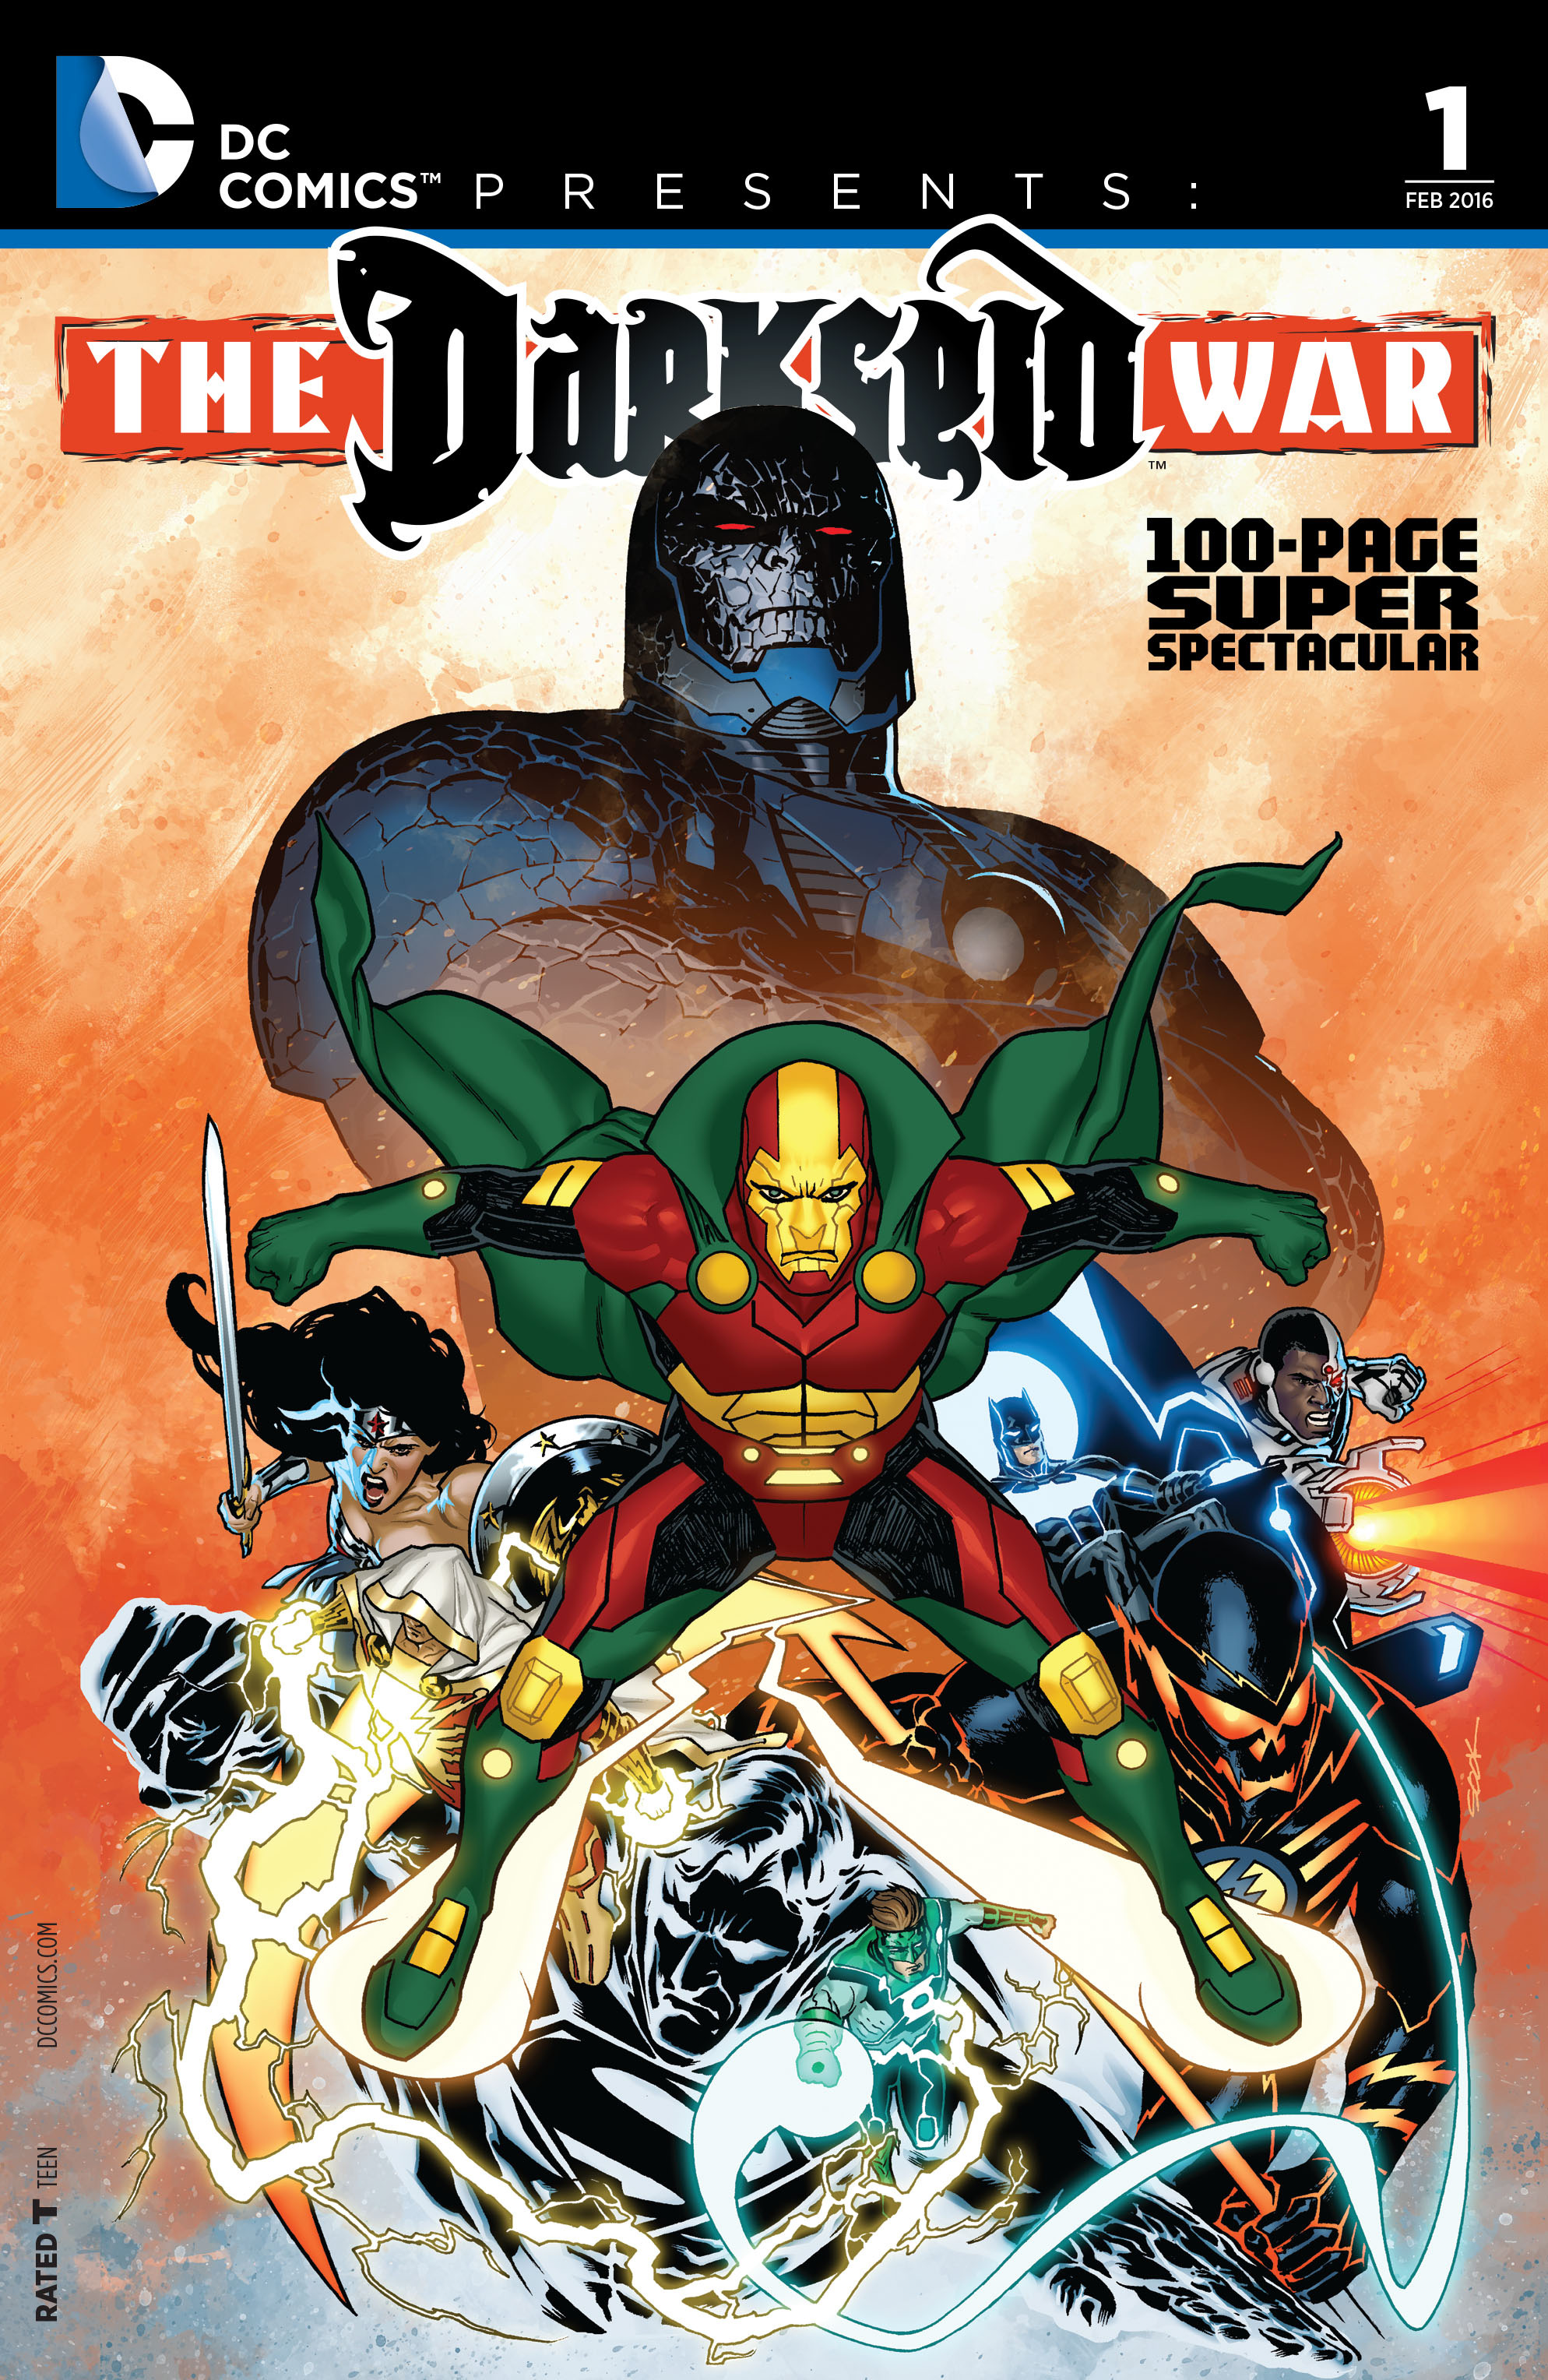 DC Comics Presents: Darkseid War 100-Page Super Spectacular Full Page 1